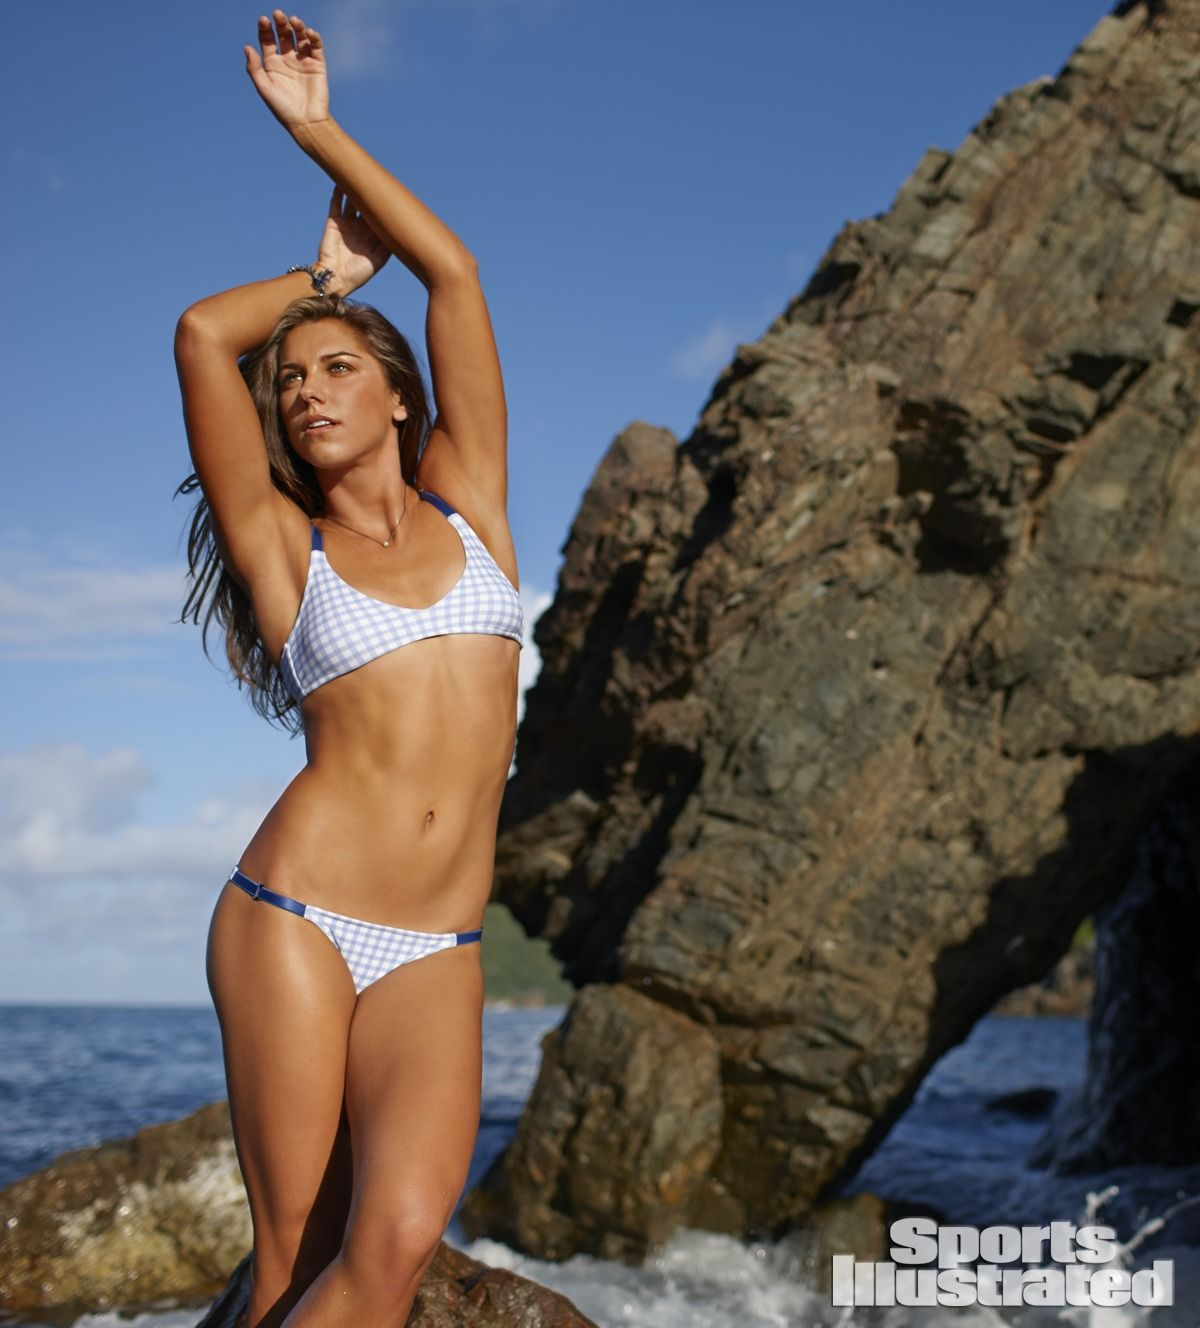 alex-morgan-in-sports-illustrated-2014-swimsuit-issue_12.jpg - 143.11 KB